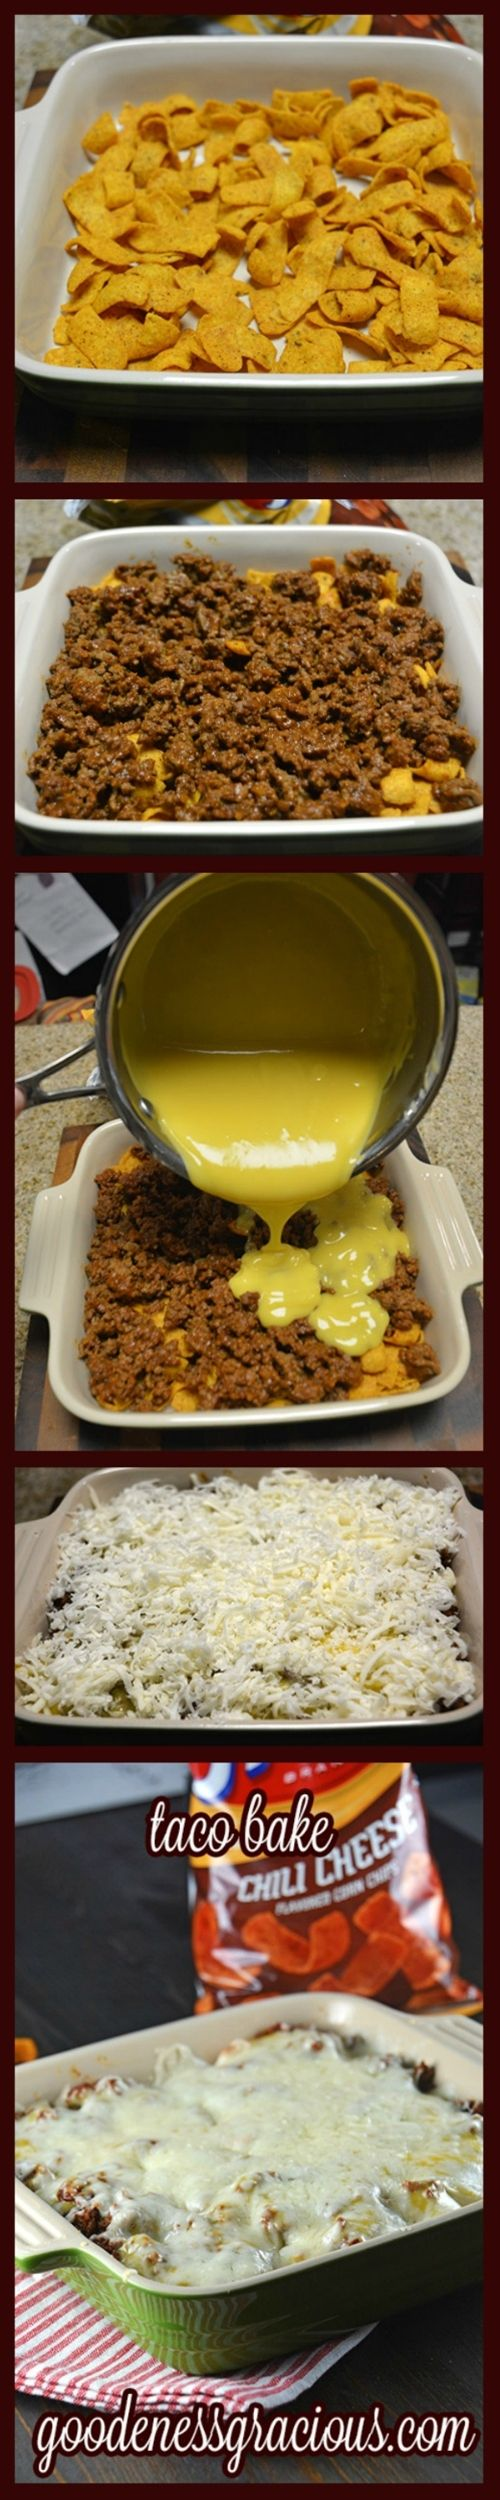 Ingredients: Serves: 4 Prep Time: 20 minutes Cook Time: 10 minutes 1 lb Ground Beef 1 pkg Taco Seasoning 2/3 Cup Water Chili Cheese Corn Chips- to taste 1 Can